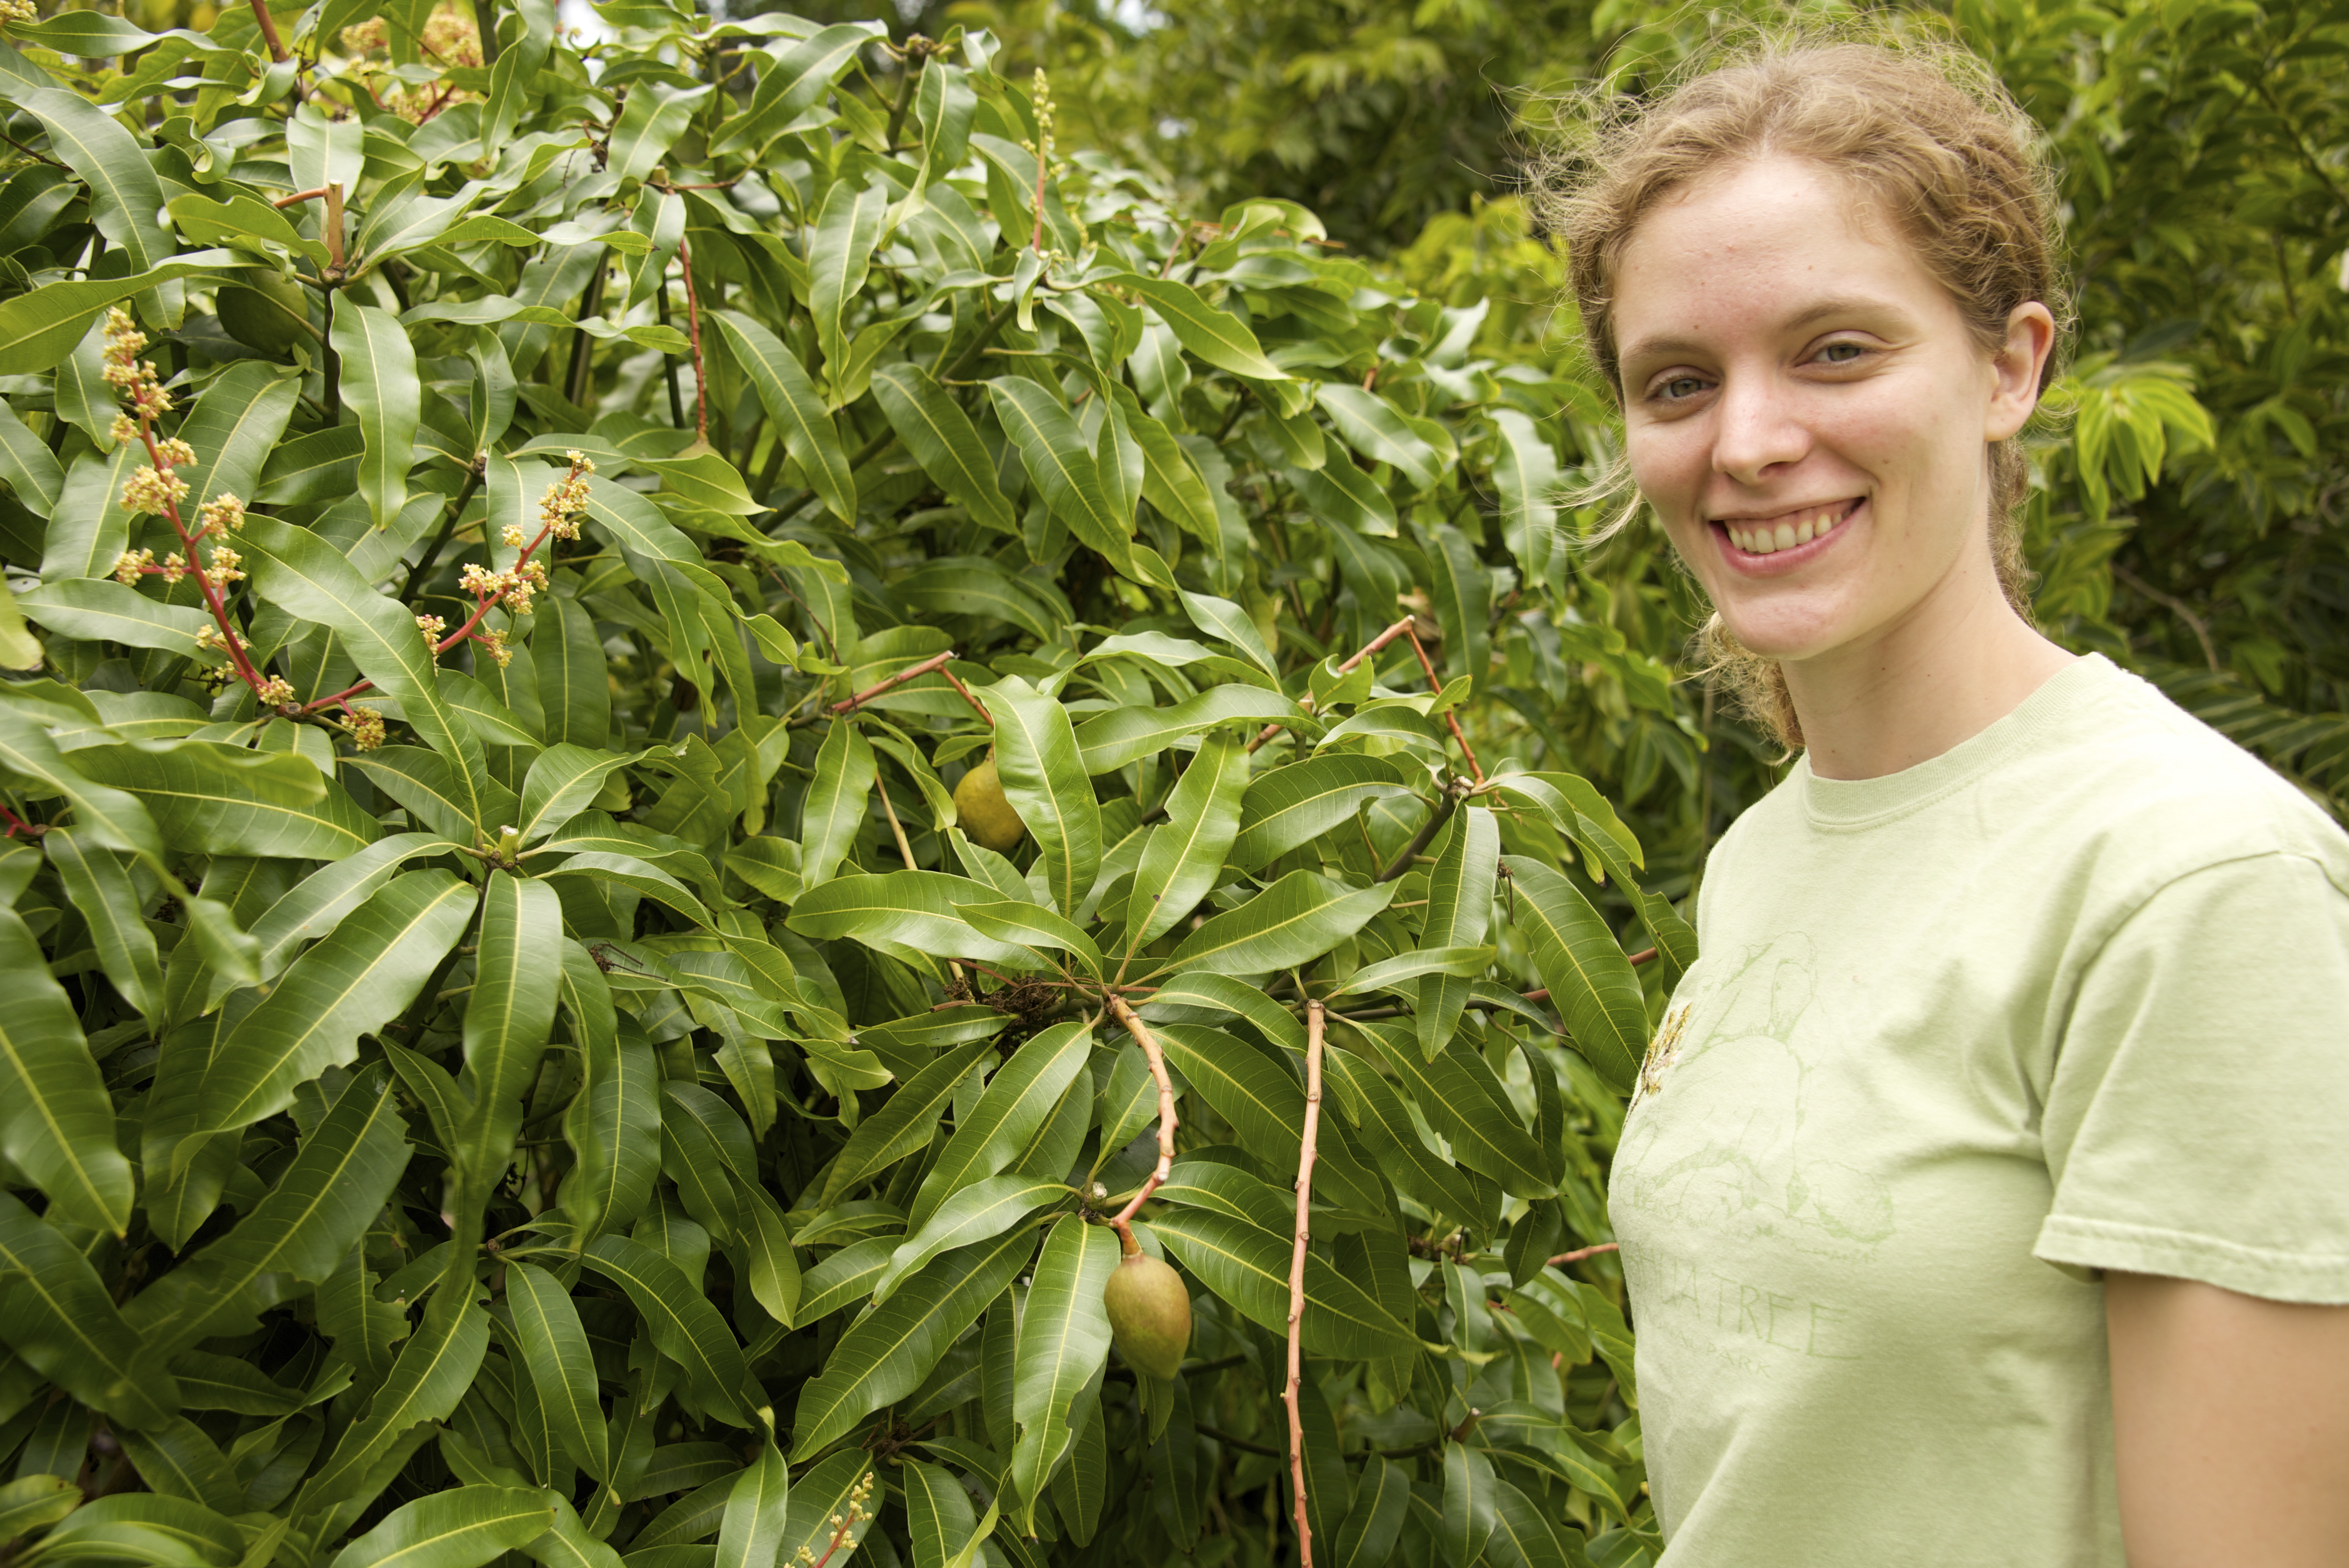 Biology Ph.D. student Emily Warschefsky is studying the genetic diversity and evolutionary history of mangos.